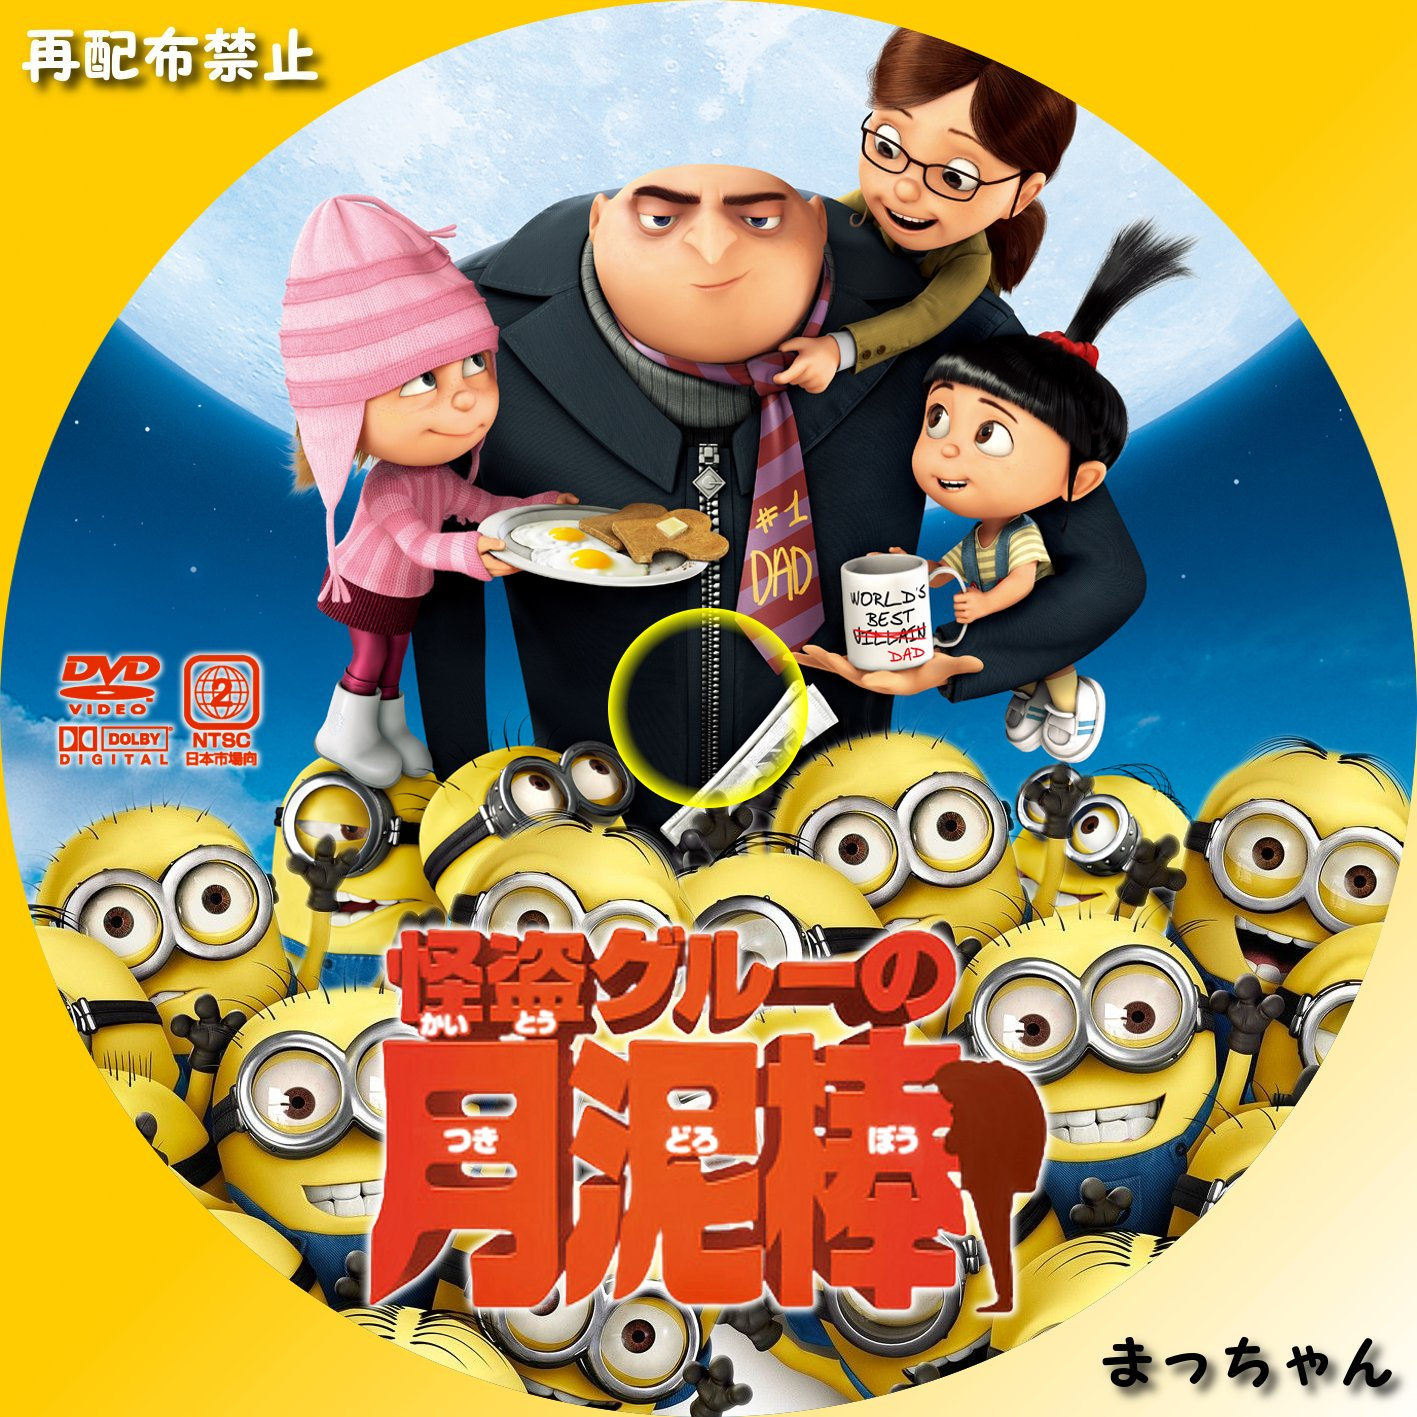 Despicable Me DVD Label : カレンダー 2015 書き込み : カレンダー